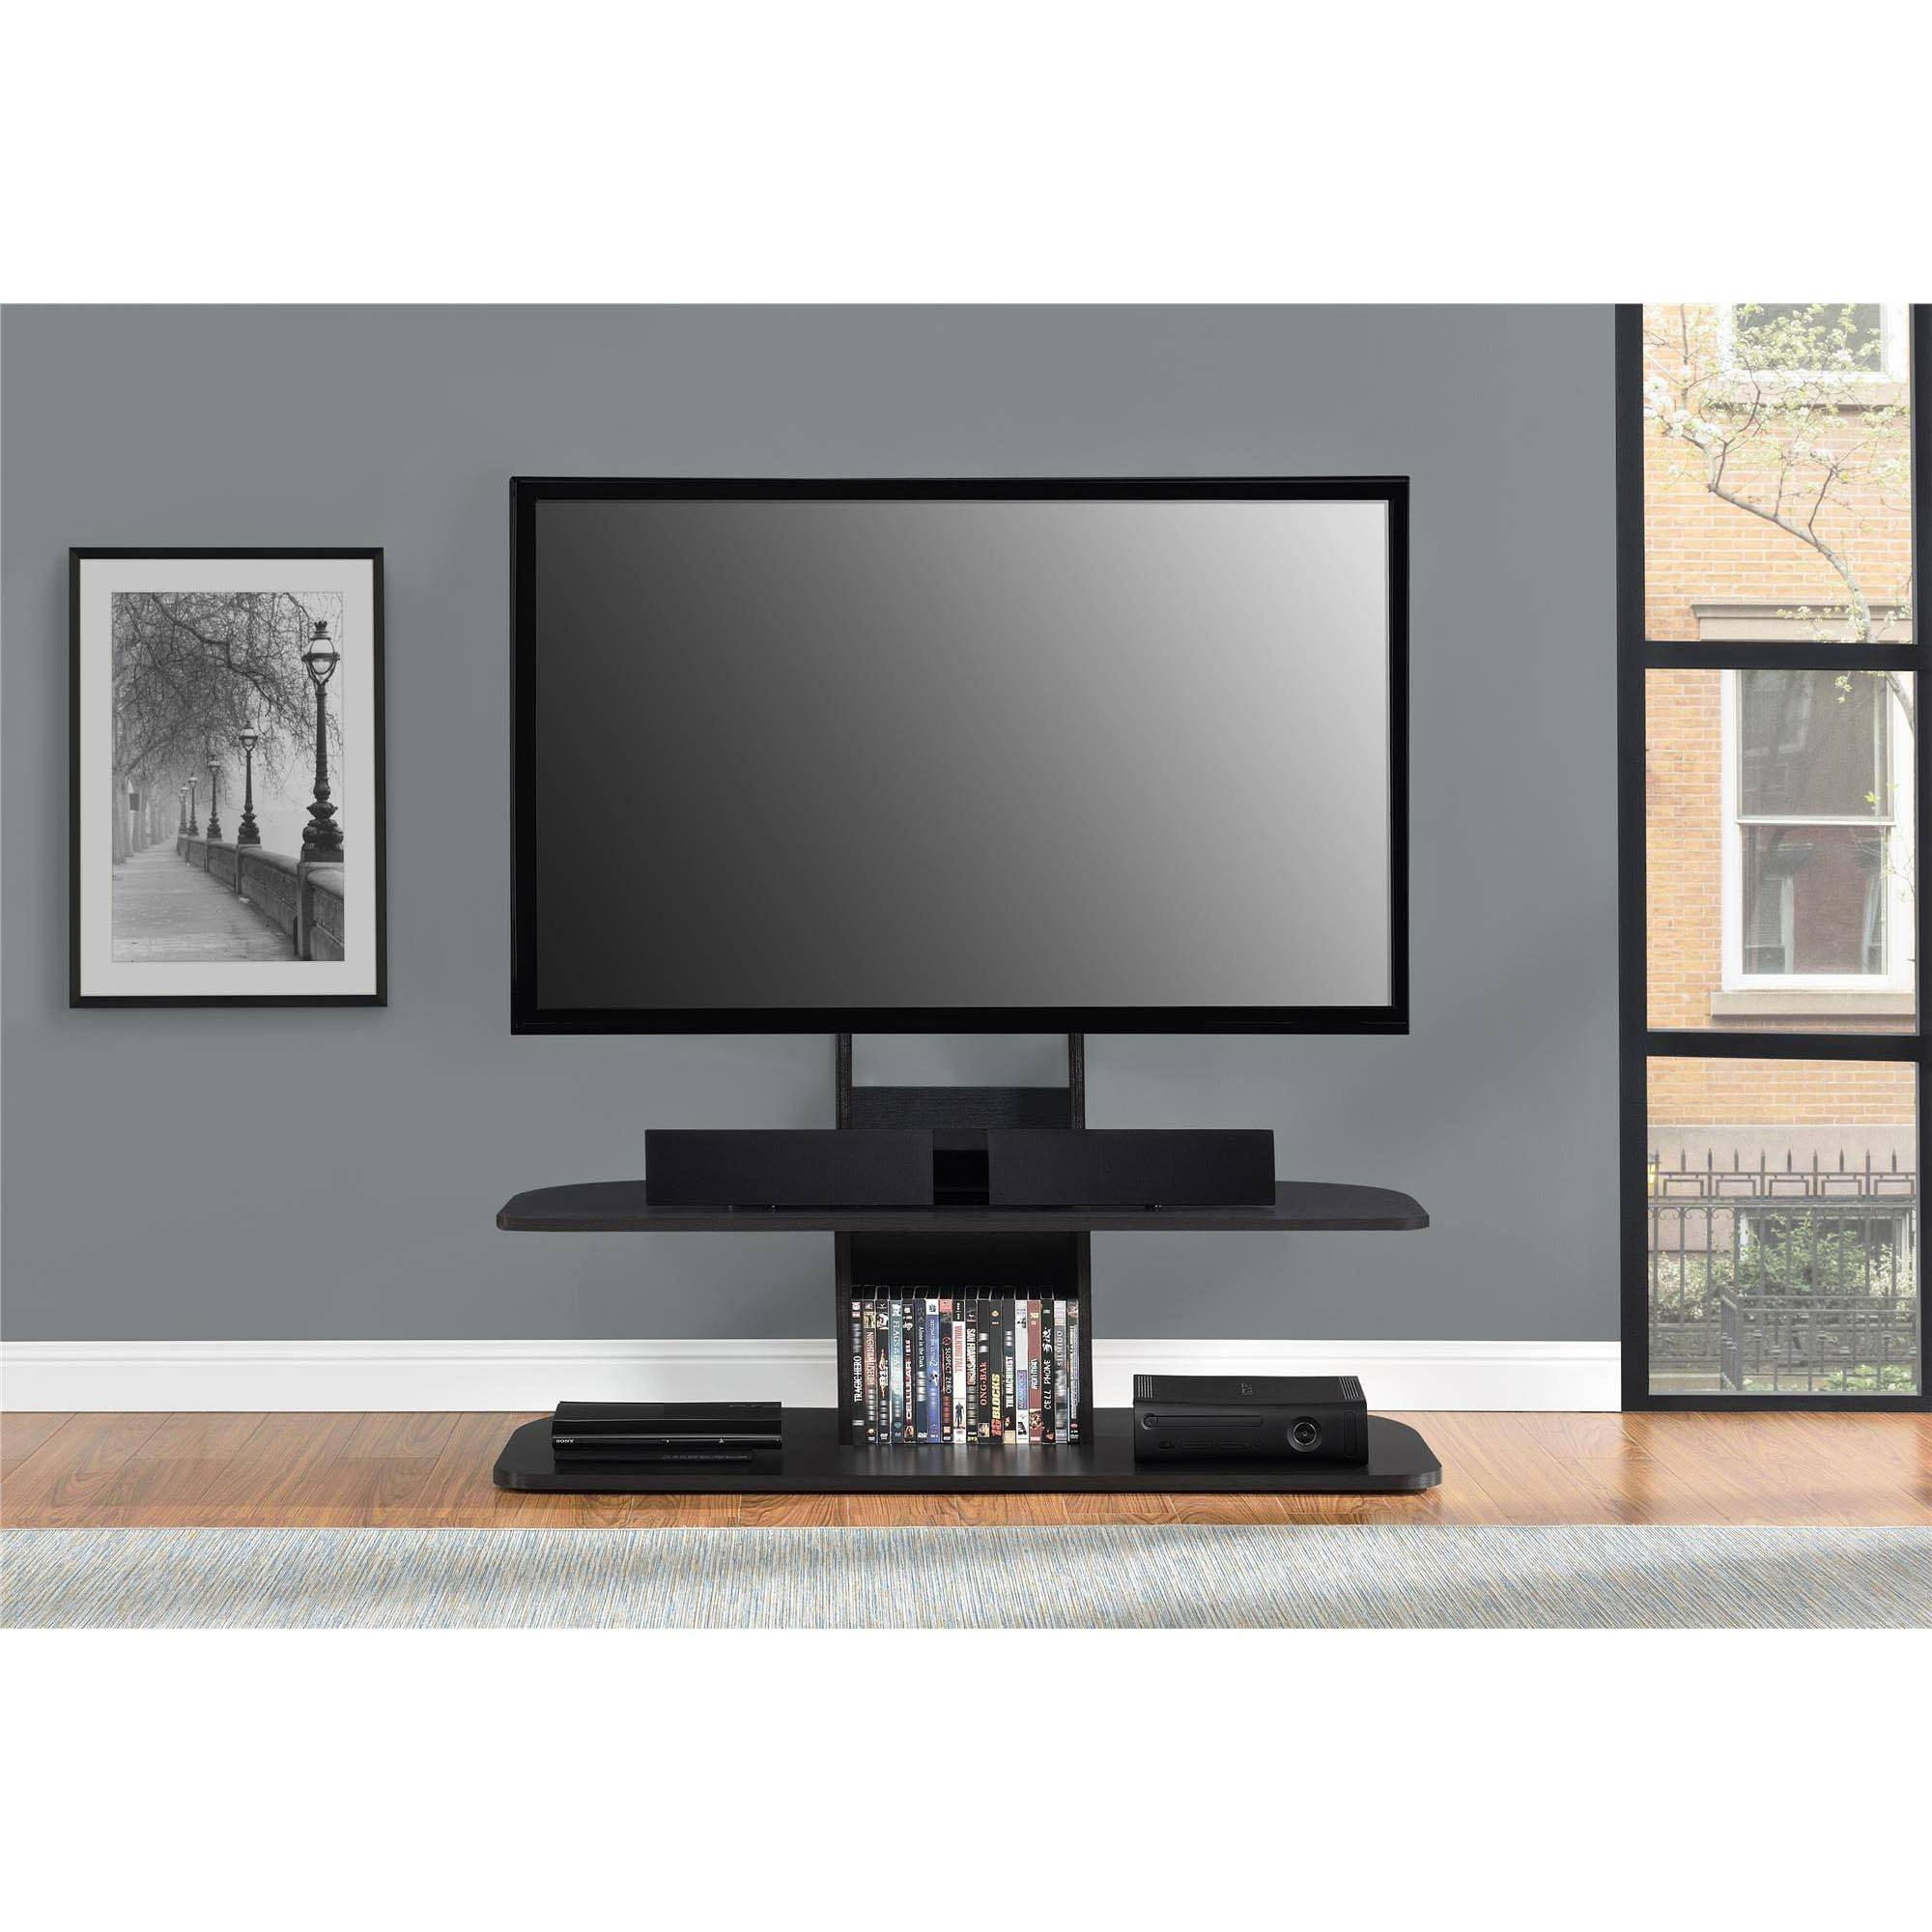 "Whalen 3-In-1 Black Tv Console For Tvs Up To 70"", Black Glass within Tv Stands For 70 Inch Tvs (Image 15 of 15)"